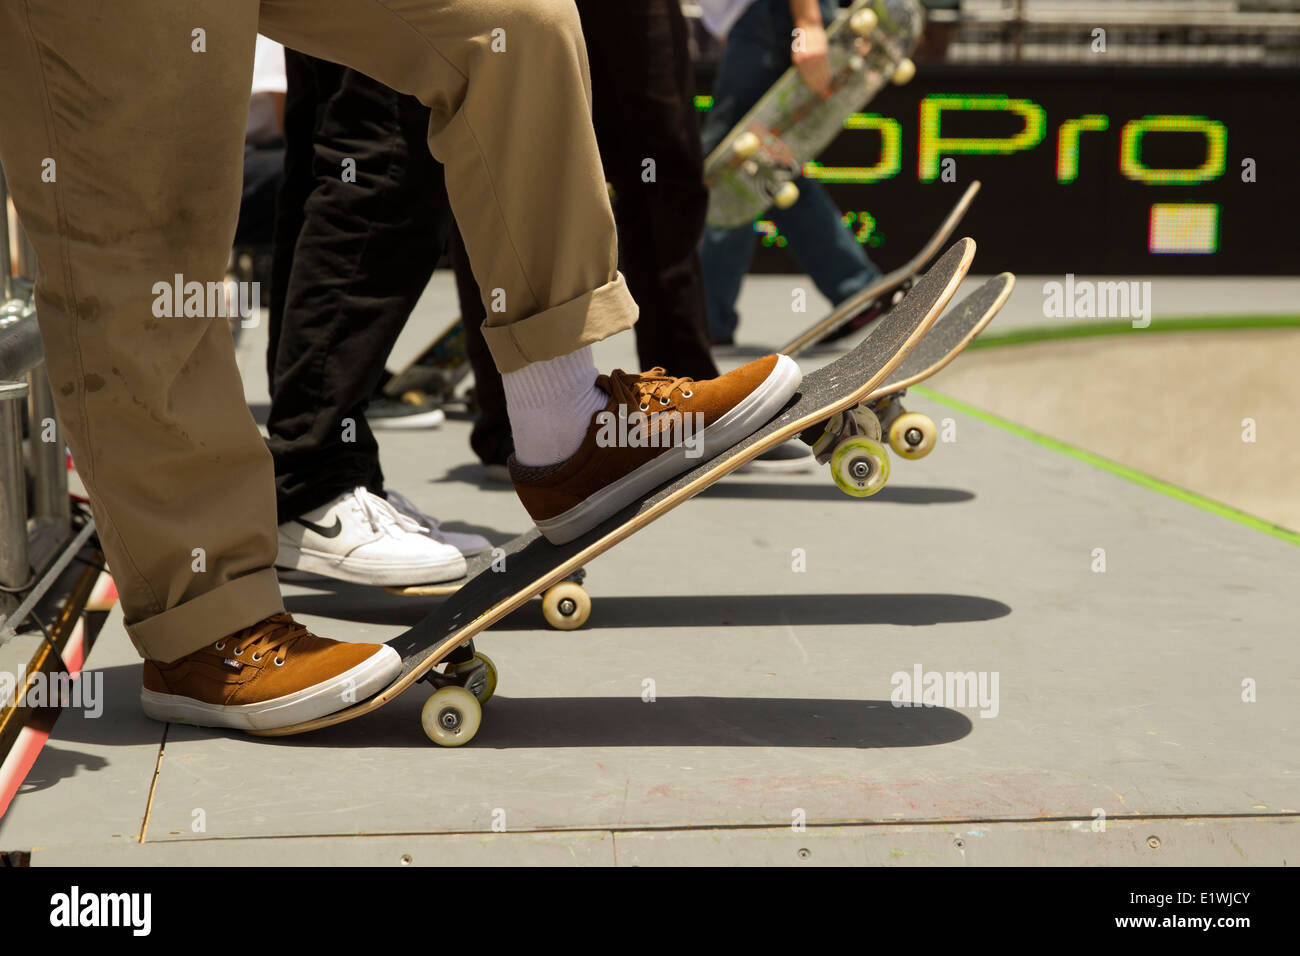 X-Games at the Circuit of the Americas held in Austin, Texas. Young skateboard athletes during practice runs - Stock Image